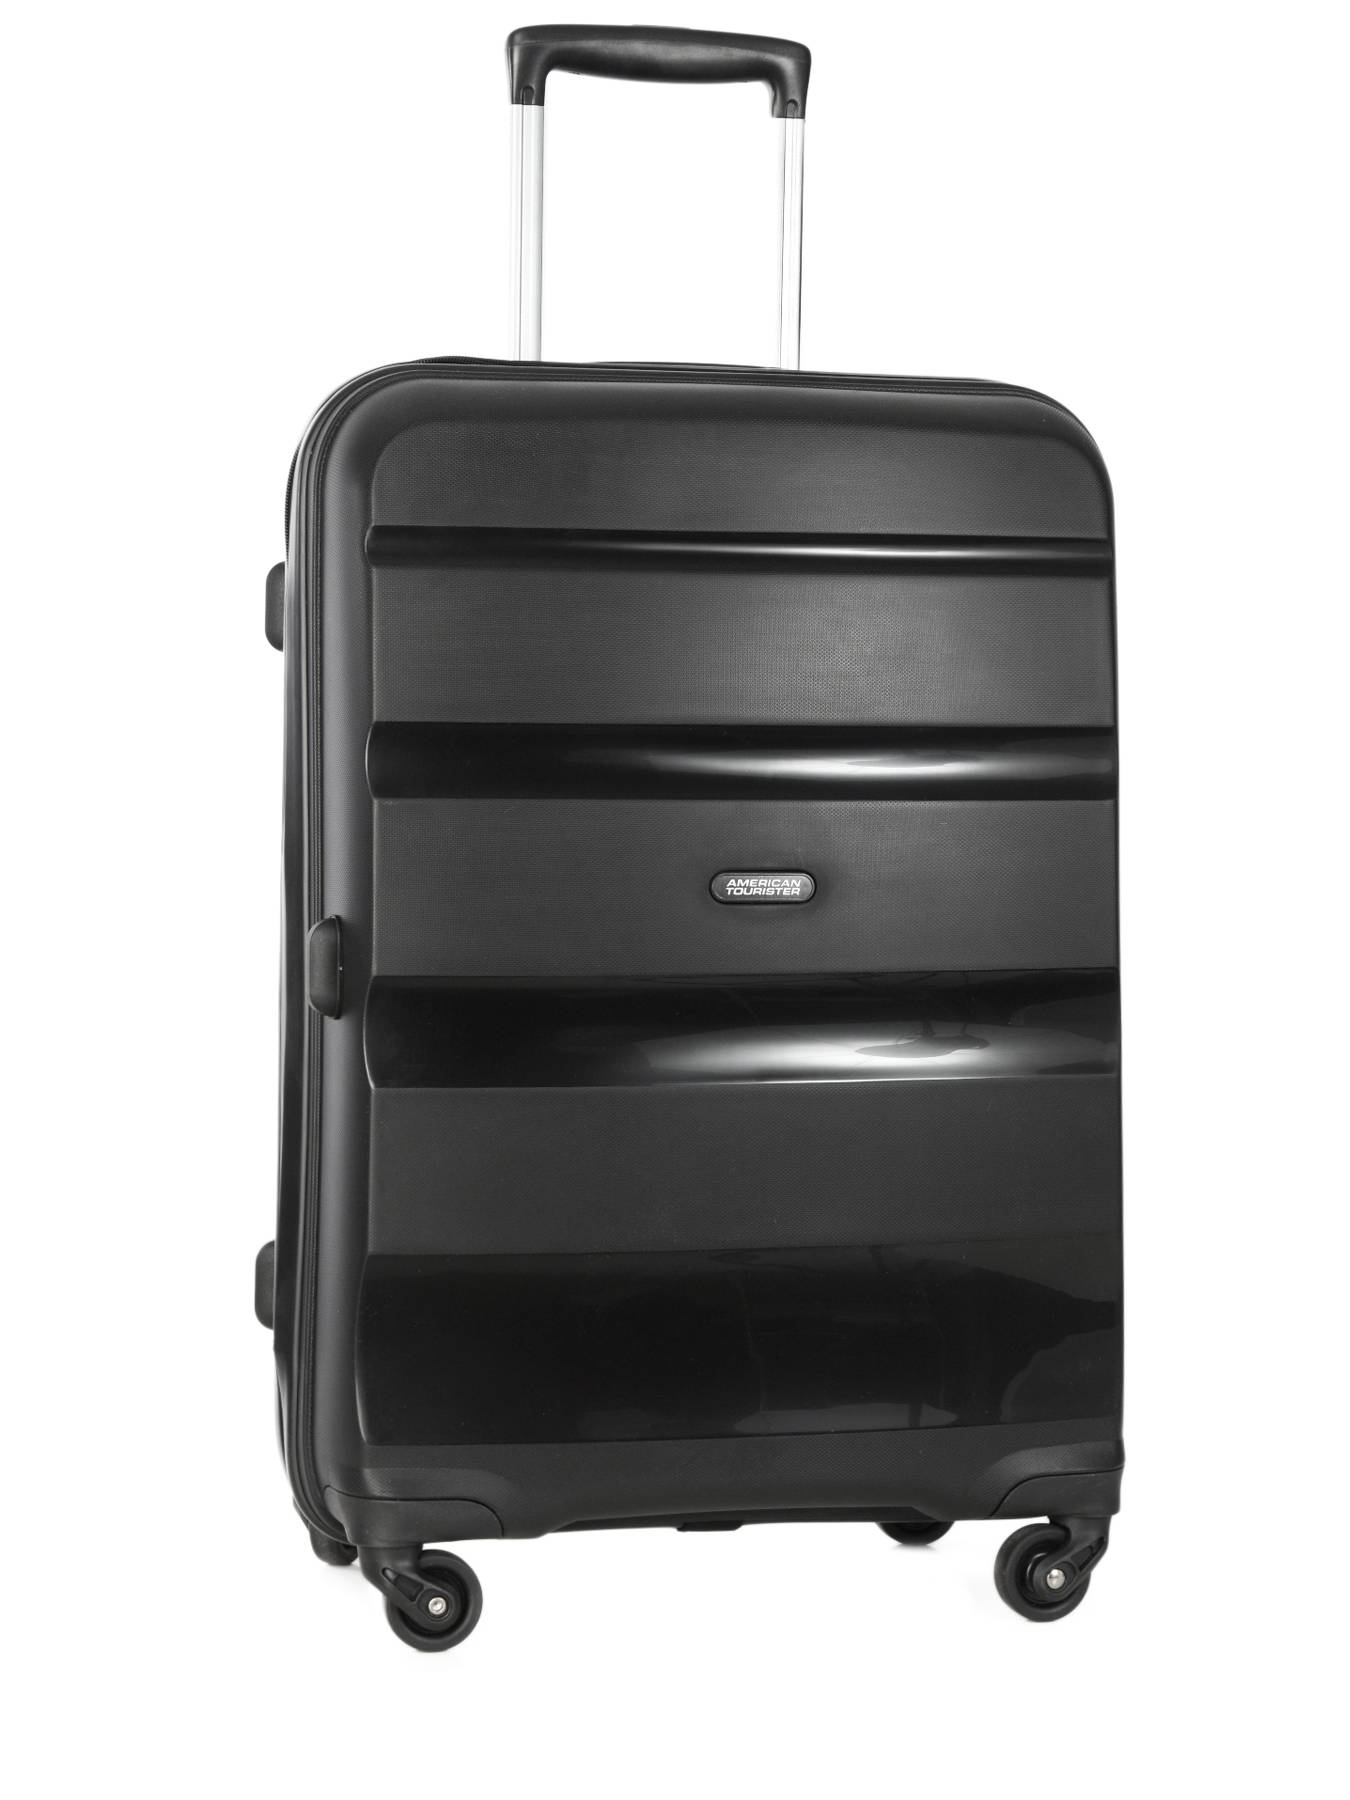 valise rigide american tourister bon air black en vente au meilleur prix. Black Bedroom Furniture Sets. Home Design Ideas